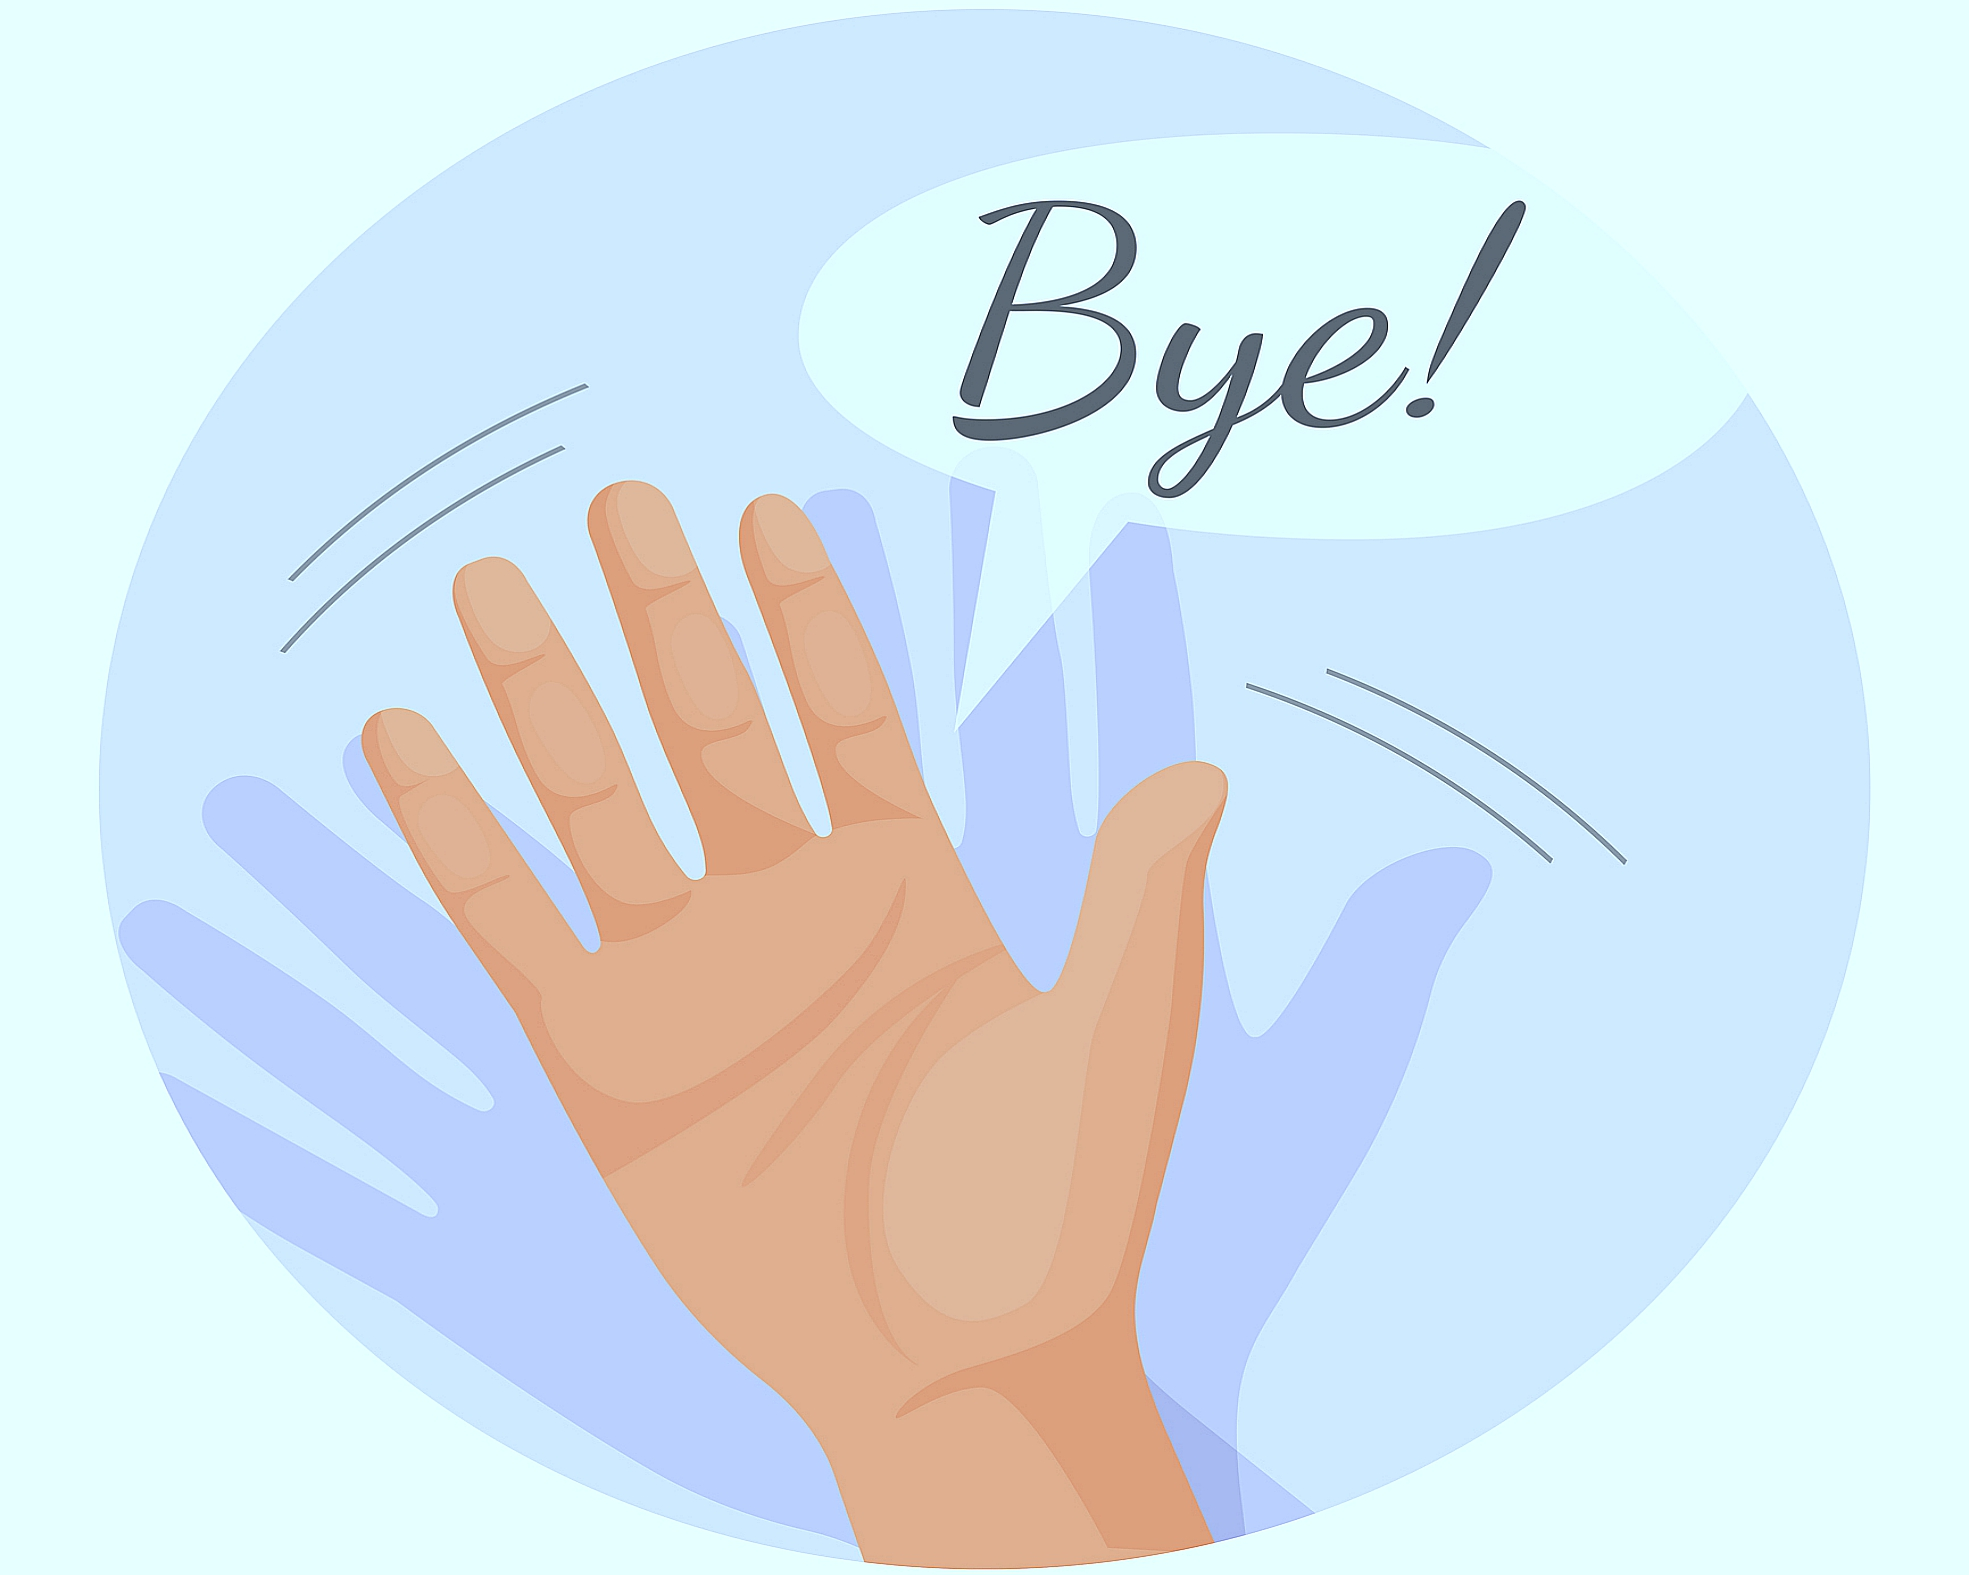 Hand waving goodbye vector illustration in round circle isolated.